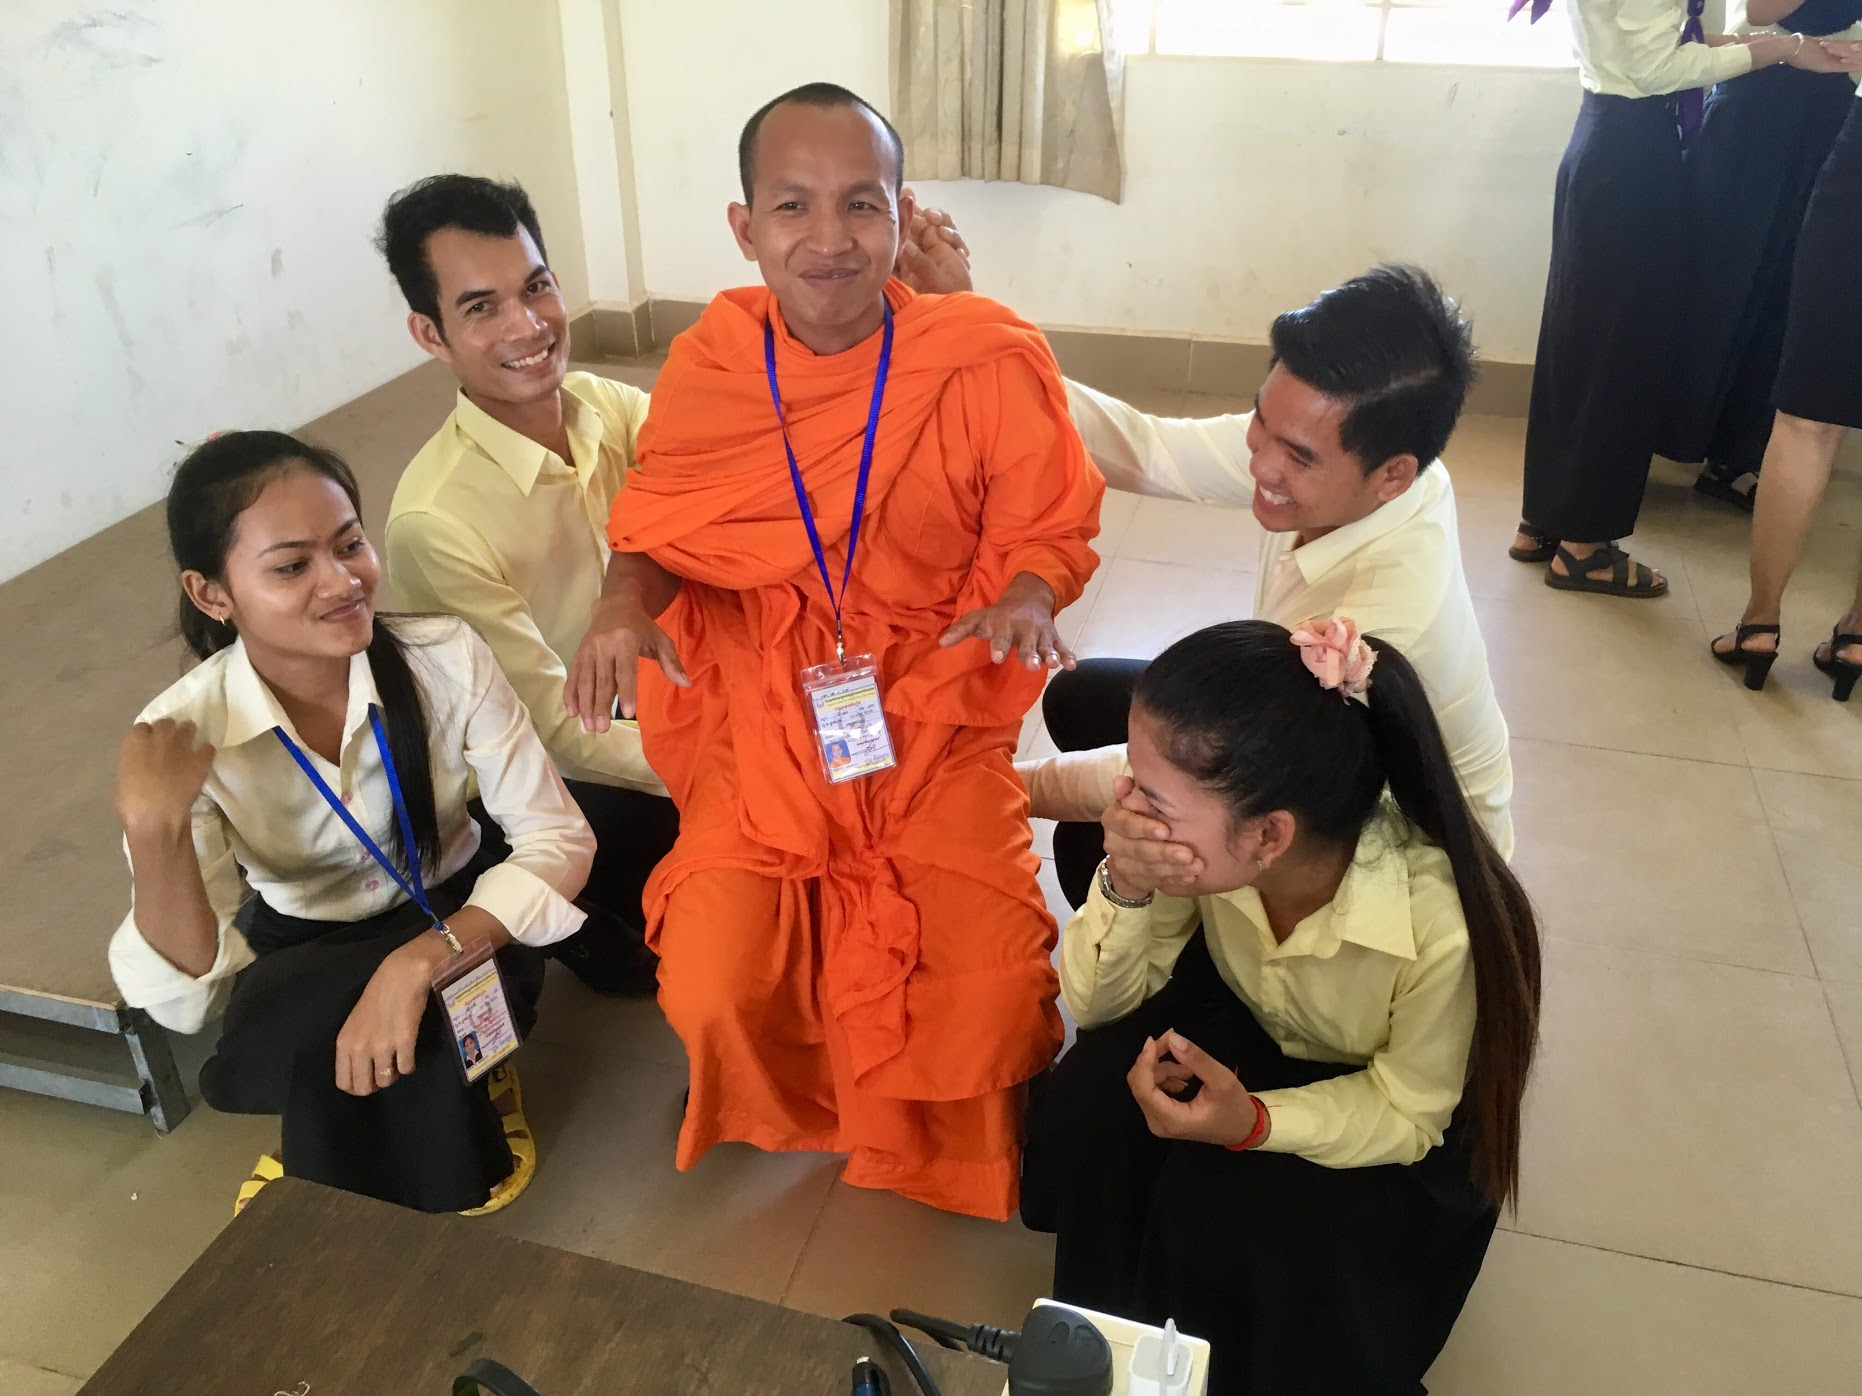 "- Photo left: TESOL Candidates in Kampot, Cambodia, create a ""chair"" as part of a workshop series ""Engaging Activities for Young Learners"" July 2019UpdatesLatest Update: September 7, 2019 Degrees of Emotion Scene Creation. https://www.richardsilberg.com/degrees-of-emotions-scene-creationPrevious UpdatesAugust 28, 2019: Go, Stop, Hands, Knees…https://www.richardsilberg.com/go-stop-hands-knees-May 19, 2019: Sentence Patterns with Story Cards. https://www.richardsilberg.com/sentence-pattern-with-story-cardsLink to power point of TESOL March 2019 Presentation on English Language Teaching and Drama:Using Drama to Access Text and Vocabularyhttps://1drv.ms/p/s!Aqmvk4LIG616d7hjO_tWpsulS2o (no video)or link to my dropbox—here you should be able to download the full version including video.www.dropbox.com/s/fs5fp1rn6kpdrke/TESOL%20Atlanta%202019.final%20presentation.pptx?dl=0Click here to see a video of my newcomer student's (grades 7-8) shadow theatre production. https://www.youtube.com/watch?v=wFtirqs3clI&t=1sHi, I'm Richard, an English Language Learner and drama teacher based in a grade 6-8 public school in Berkeley, California. I am a former English Language Fellow with the U.S. Department of State in Cambodia where I trained and continue to mentor novice and experienced teachers in various aspects of English Language Teaching methodology and strategies. I have just finished (July 2019) a series of TEYL trainings for primary teachers and teacher candidates throughout Cambodia as an English Language Specialist with the U.S. Department of State's English Language Programs. I also teach English through Drama to High School students in Nansha, China, as a guest Teacher Consultant with the University of California's Bay Area Writing Project. On this website I share drama based activities and lessons that I have used to introduce, develop and extend English language capacity for all levels of students. I provide video examples of students engaged in the activities where possible. Click on the"